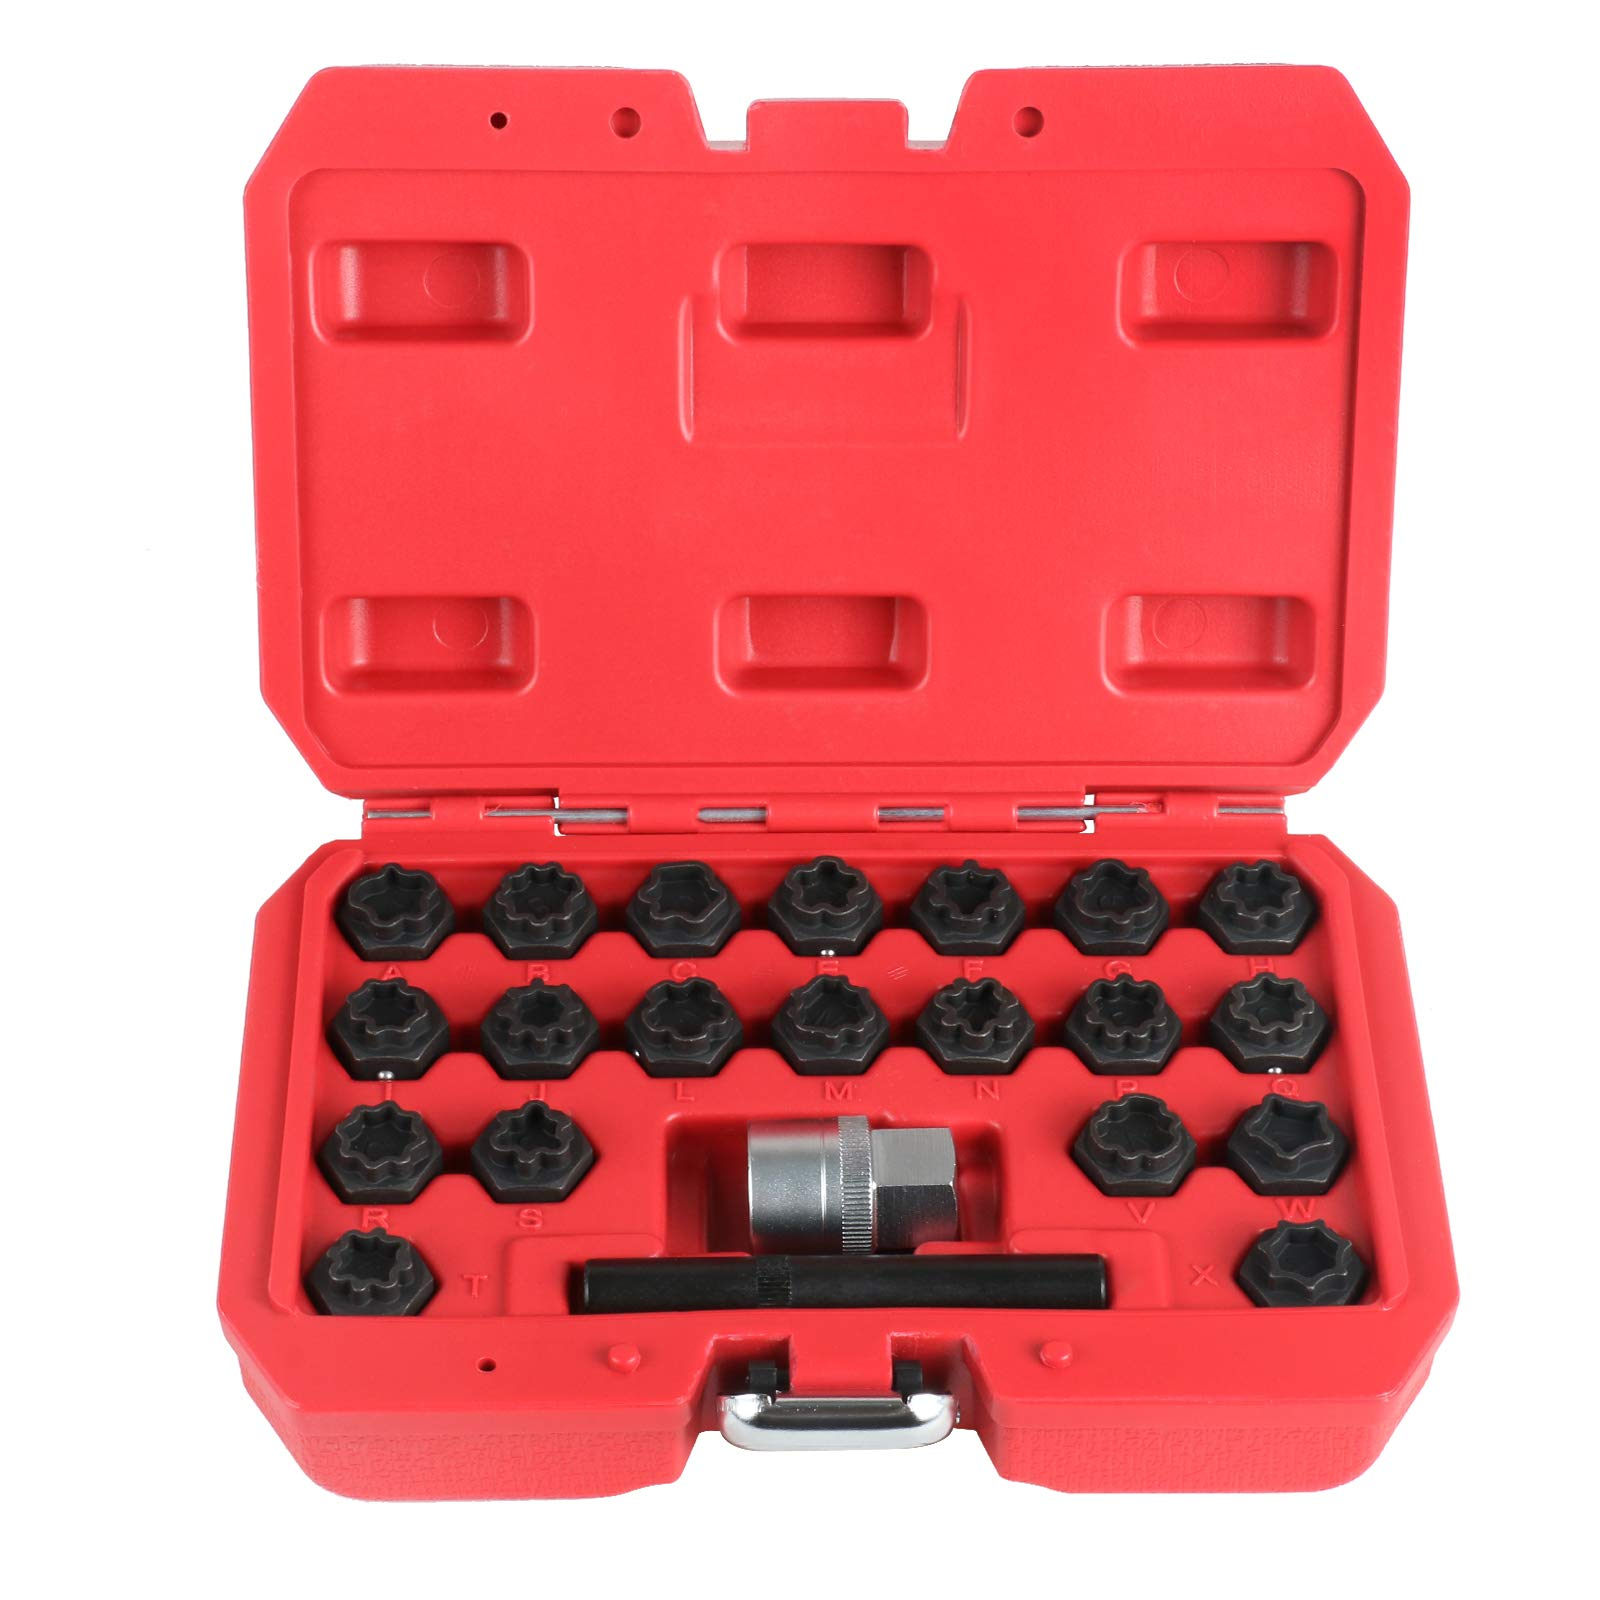 BELEY 22pcs Wheel Lock Lug Nuts Removal Set, Automotive Wheel Anti-Theft Screws Remover Socket Keys Remover Kit for Audi by BELEY